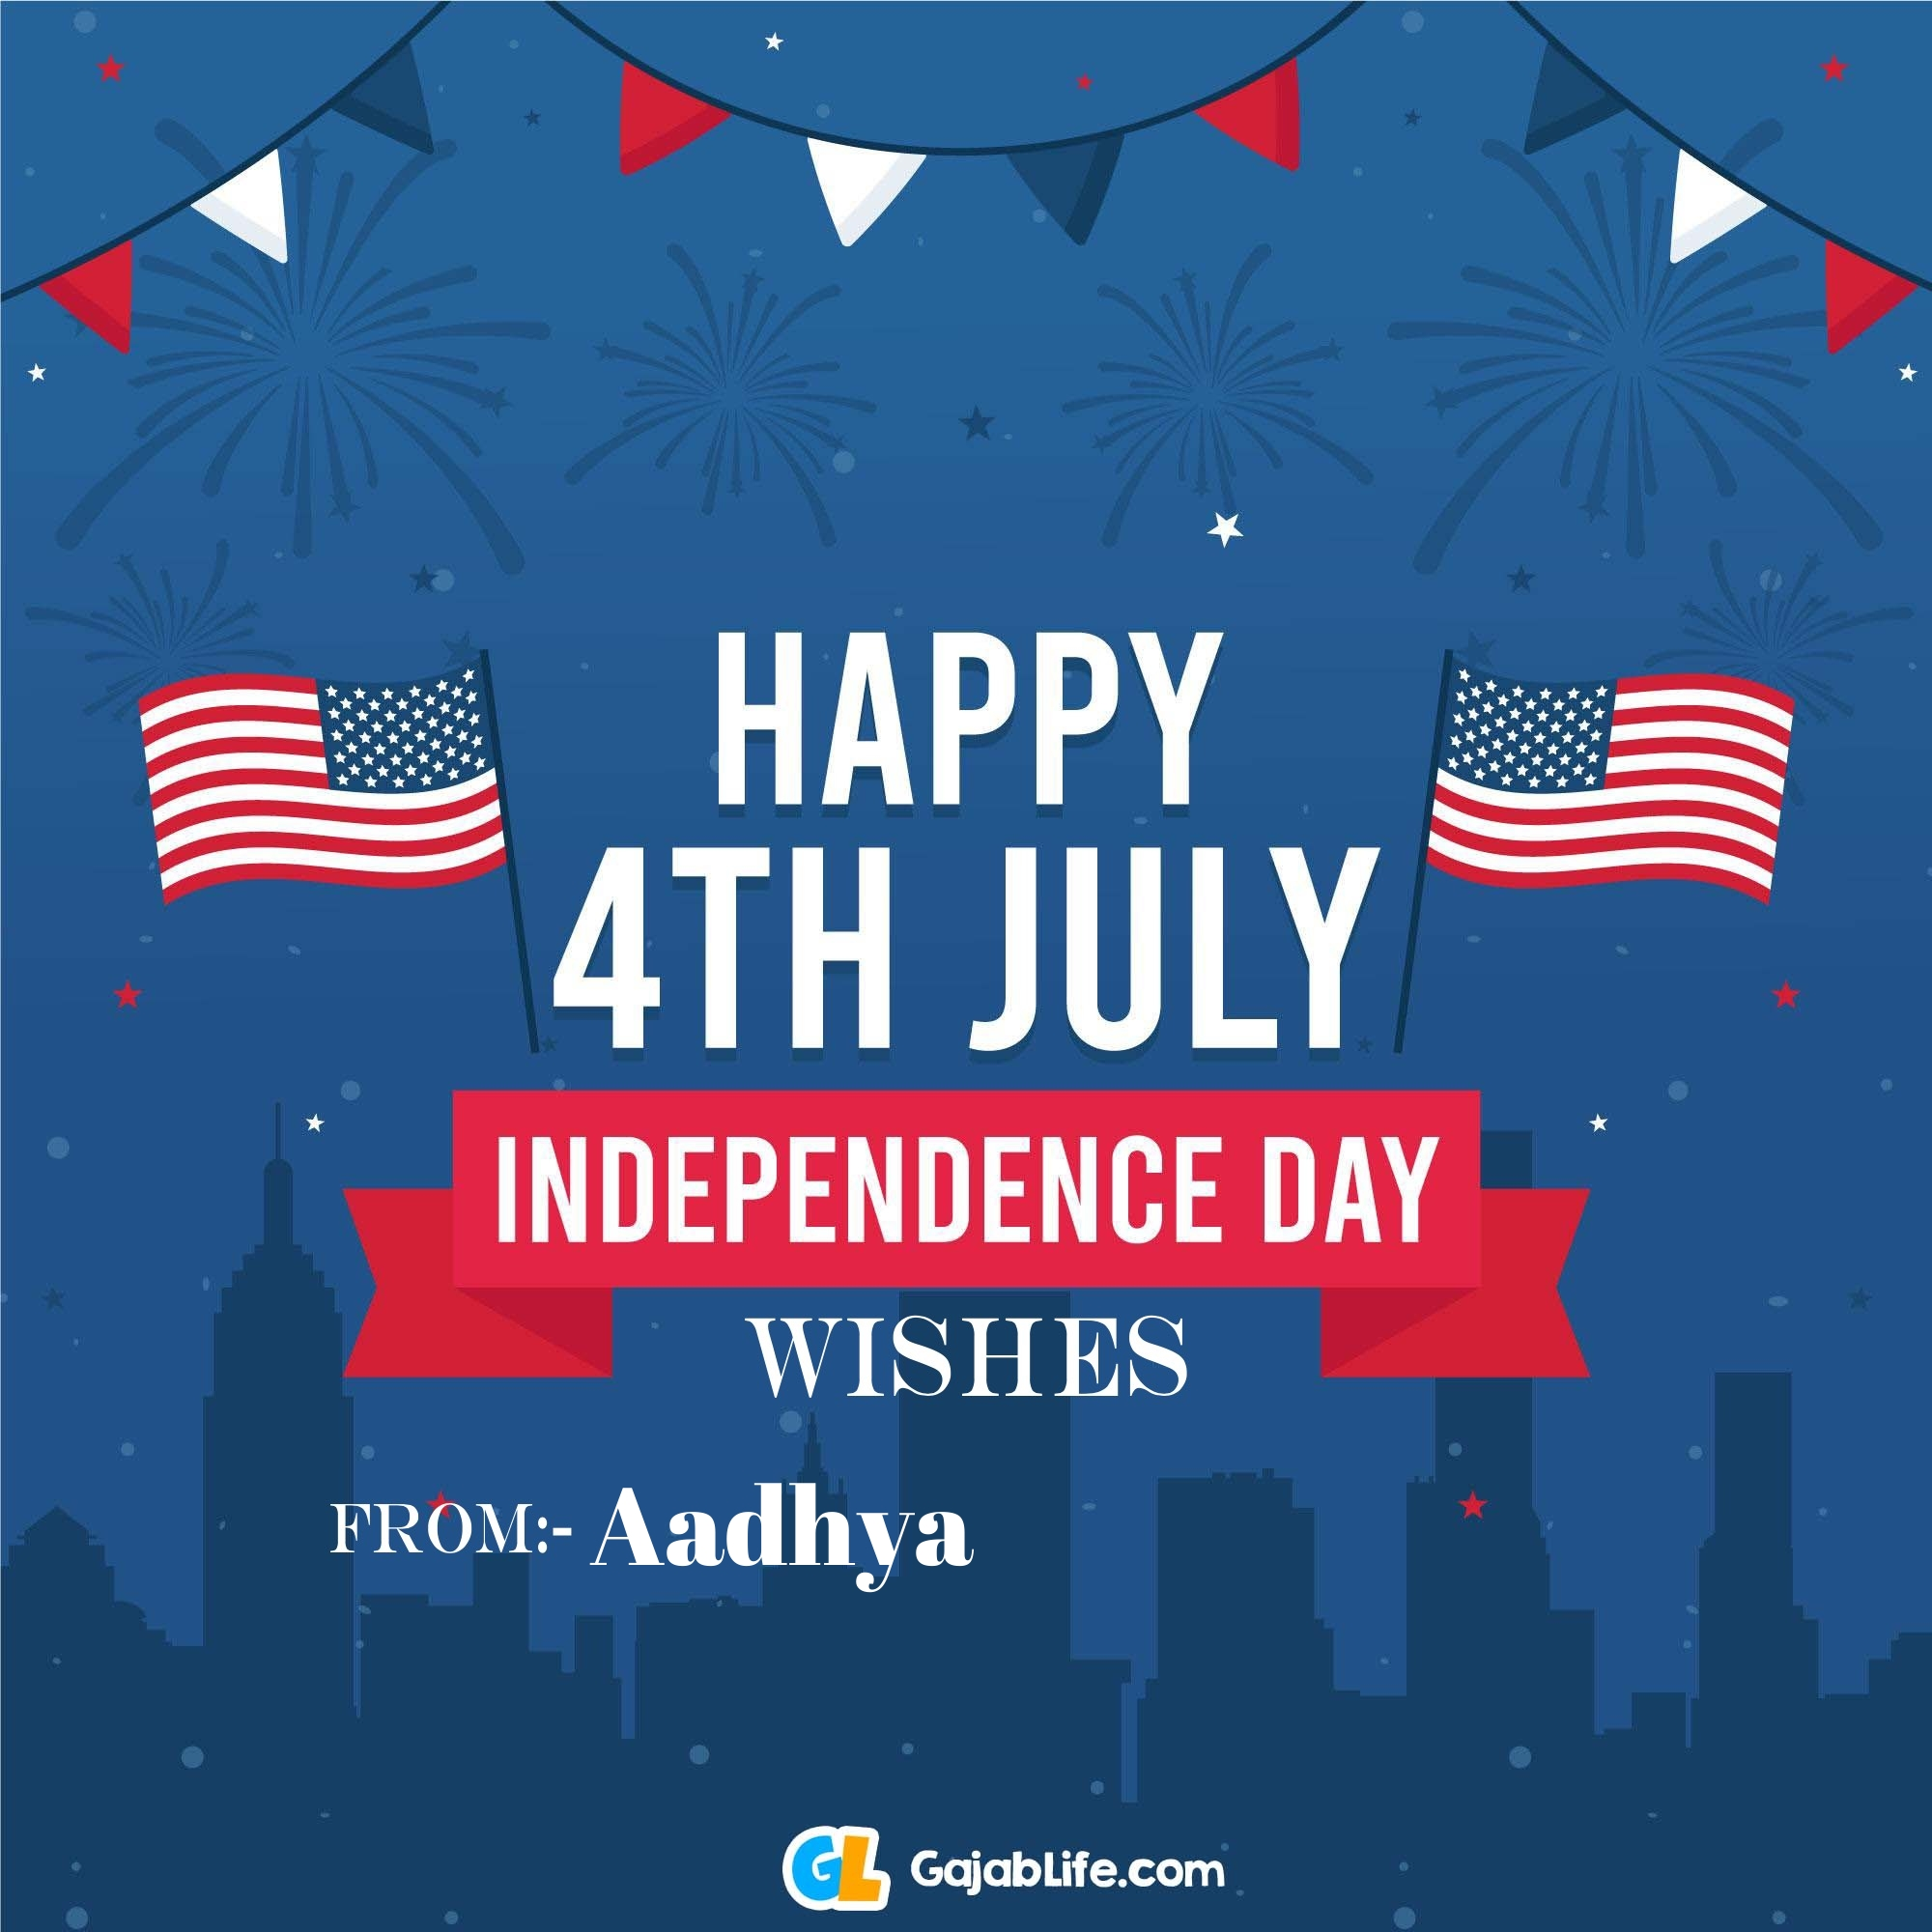 Aadhya happy independence day united states of america images